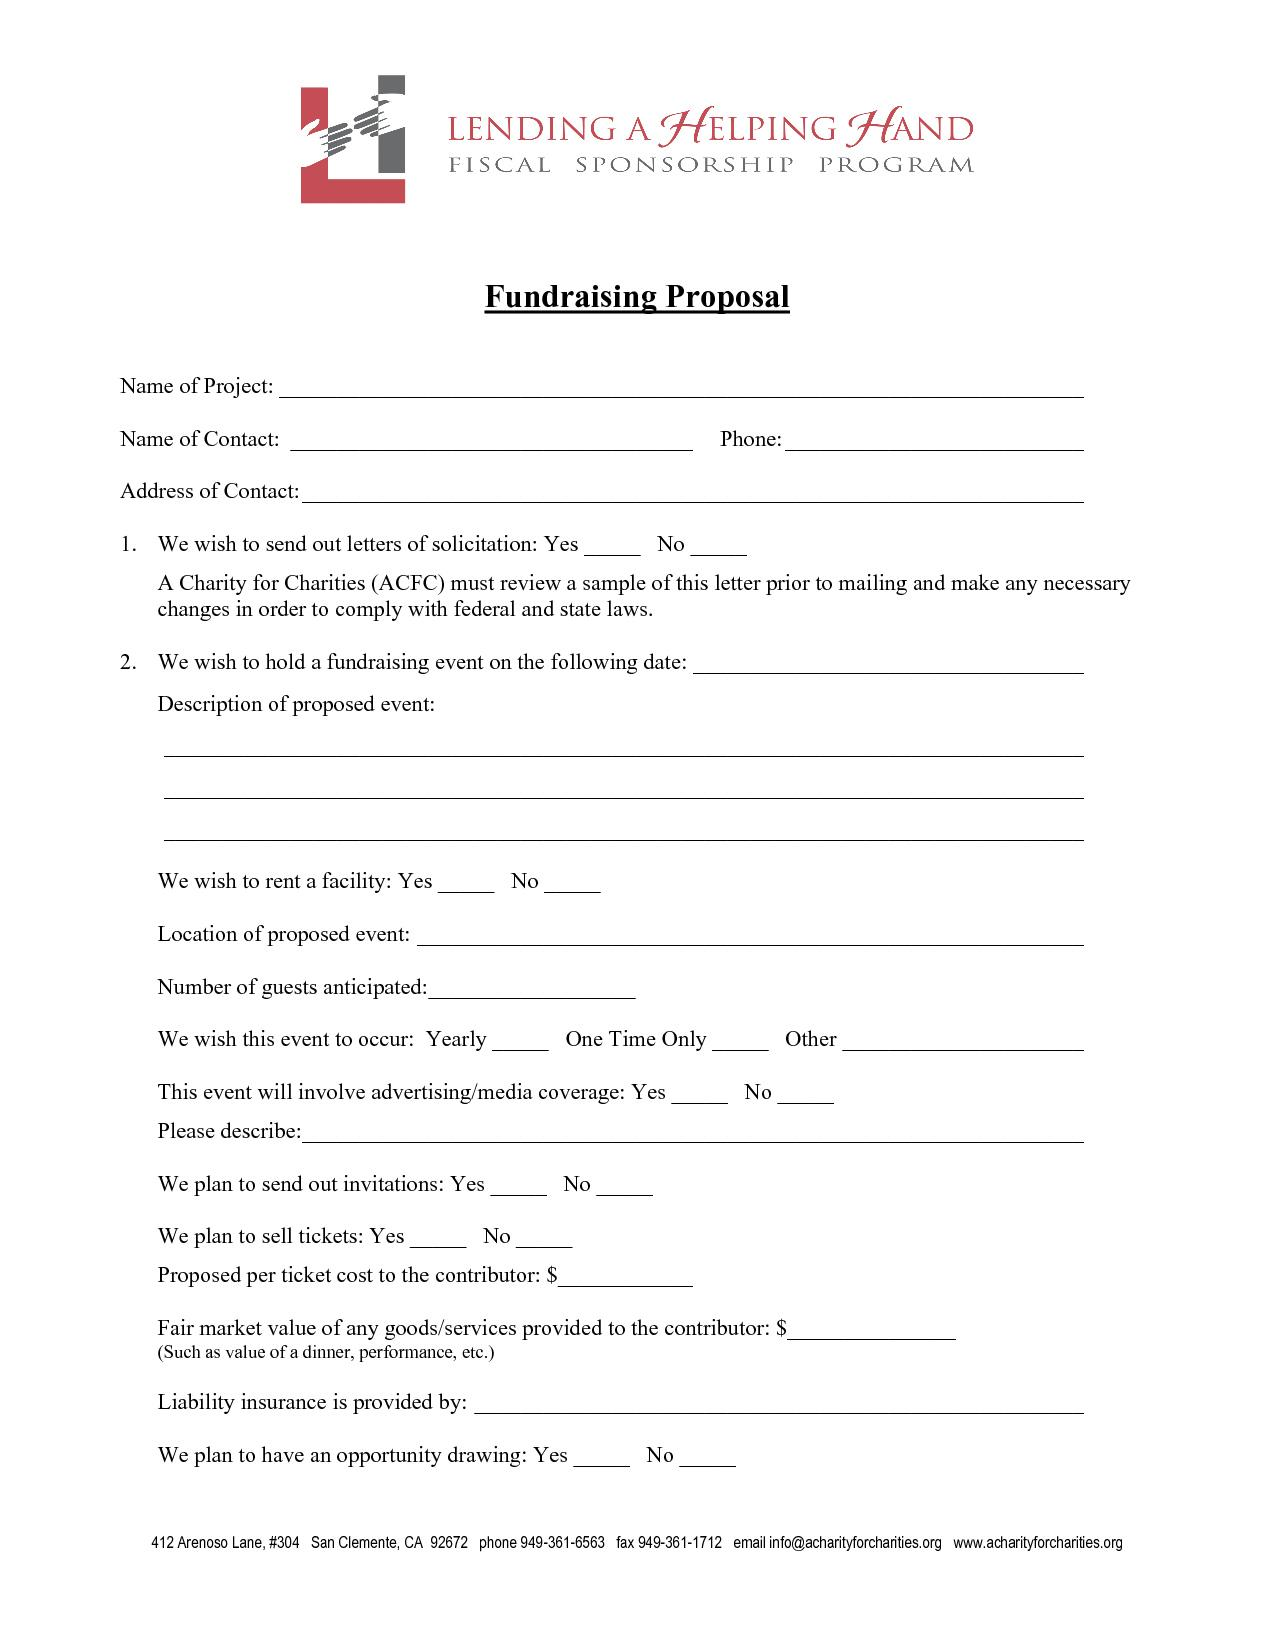 Fundraising Business Proposal Template